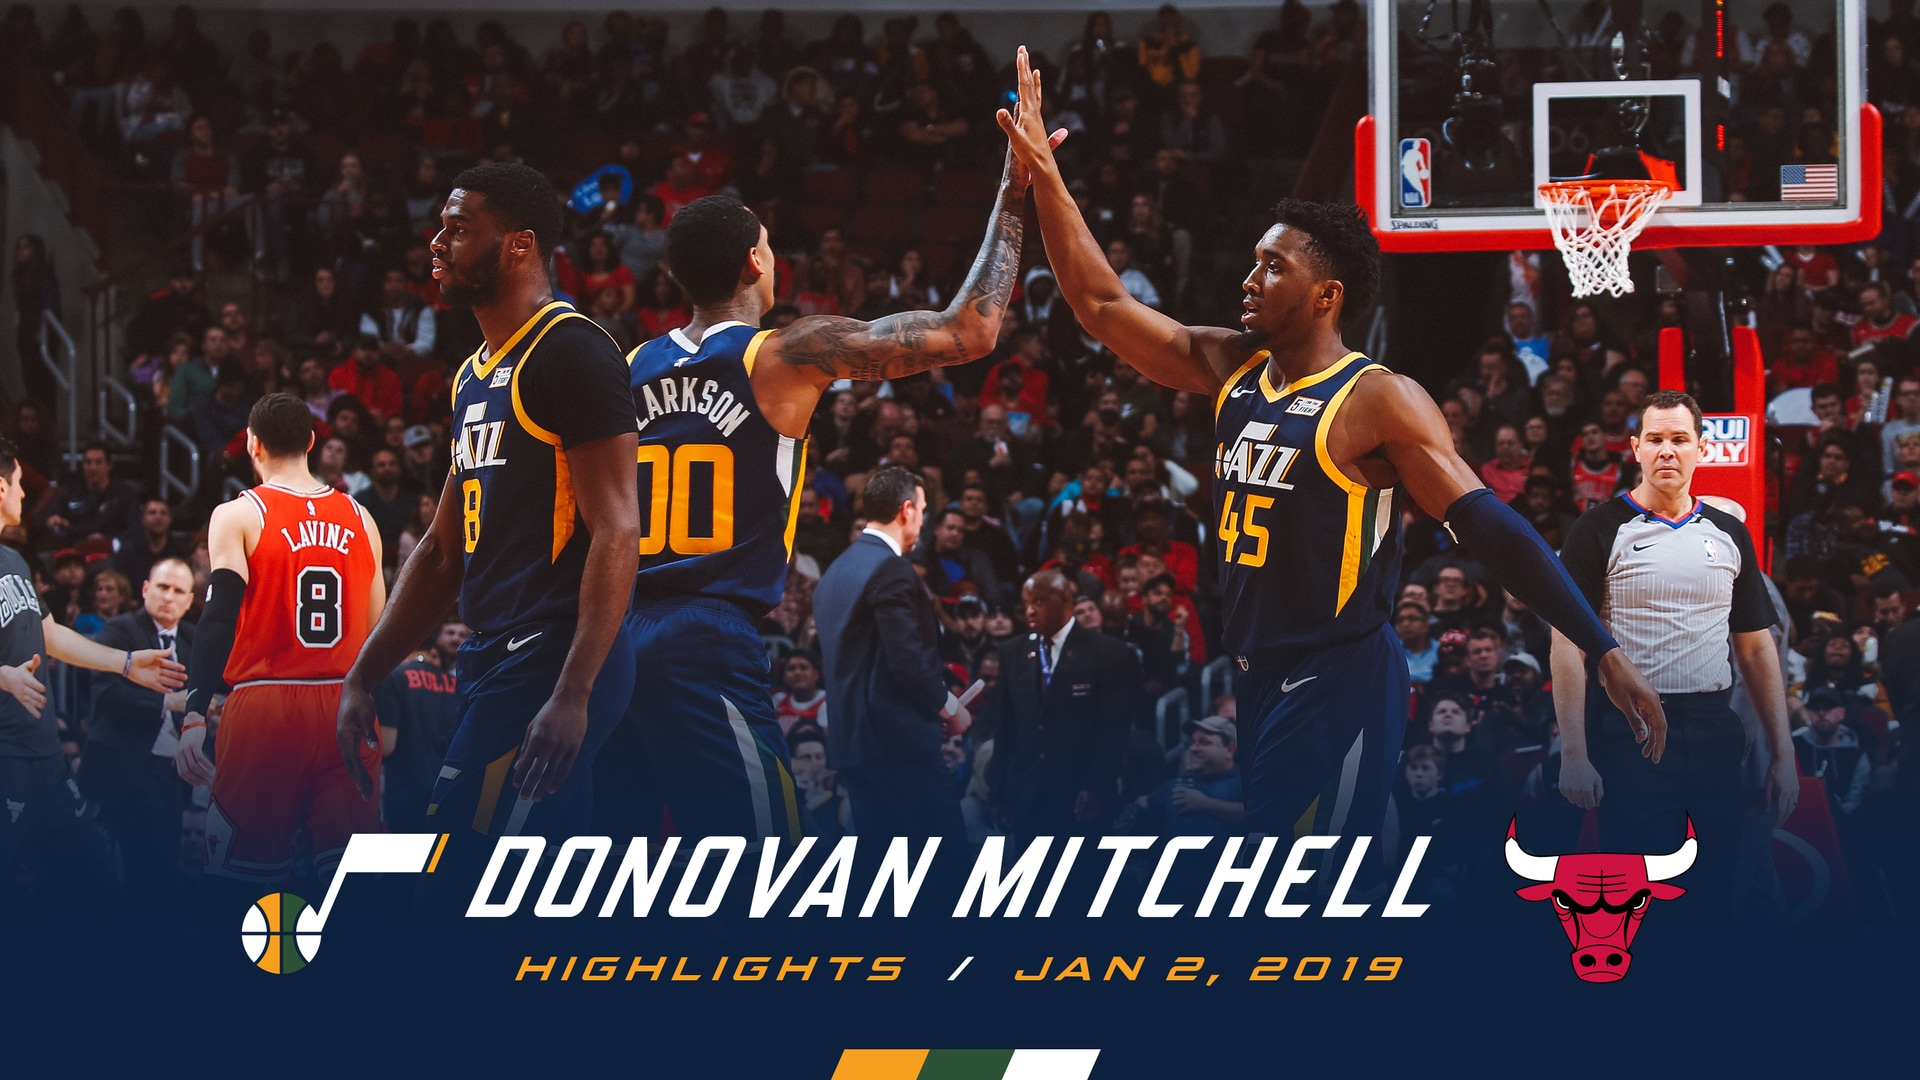 Highlights: Donovan Mitchell—17 points, 7 assists